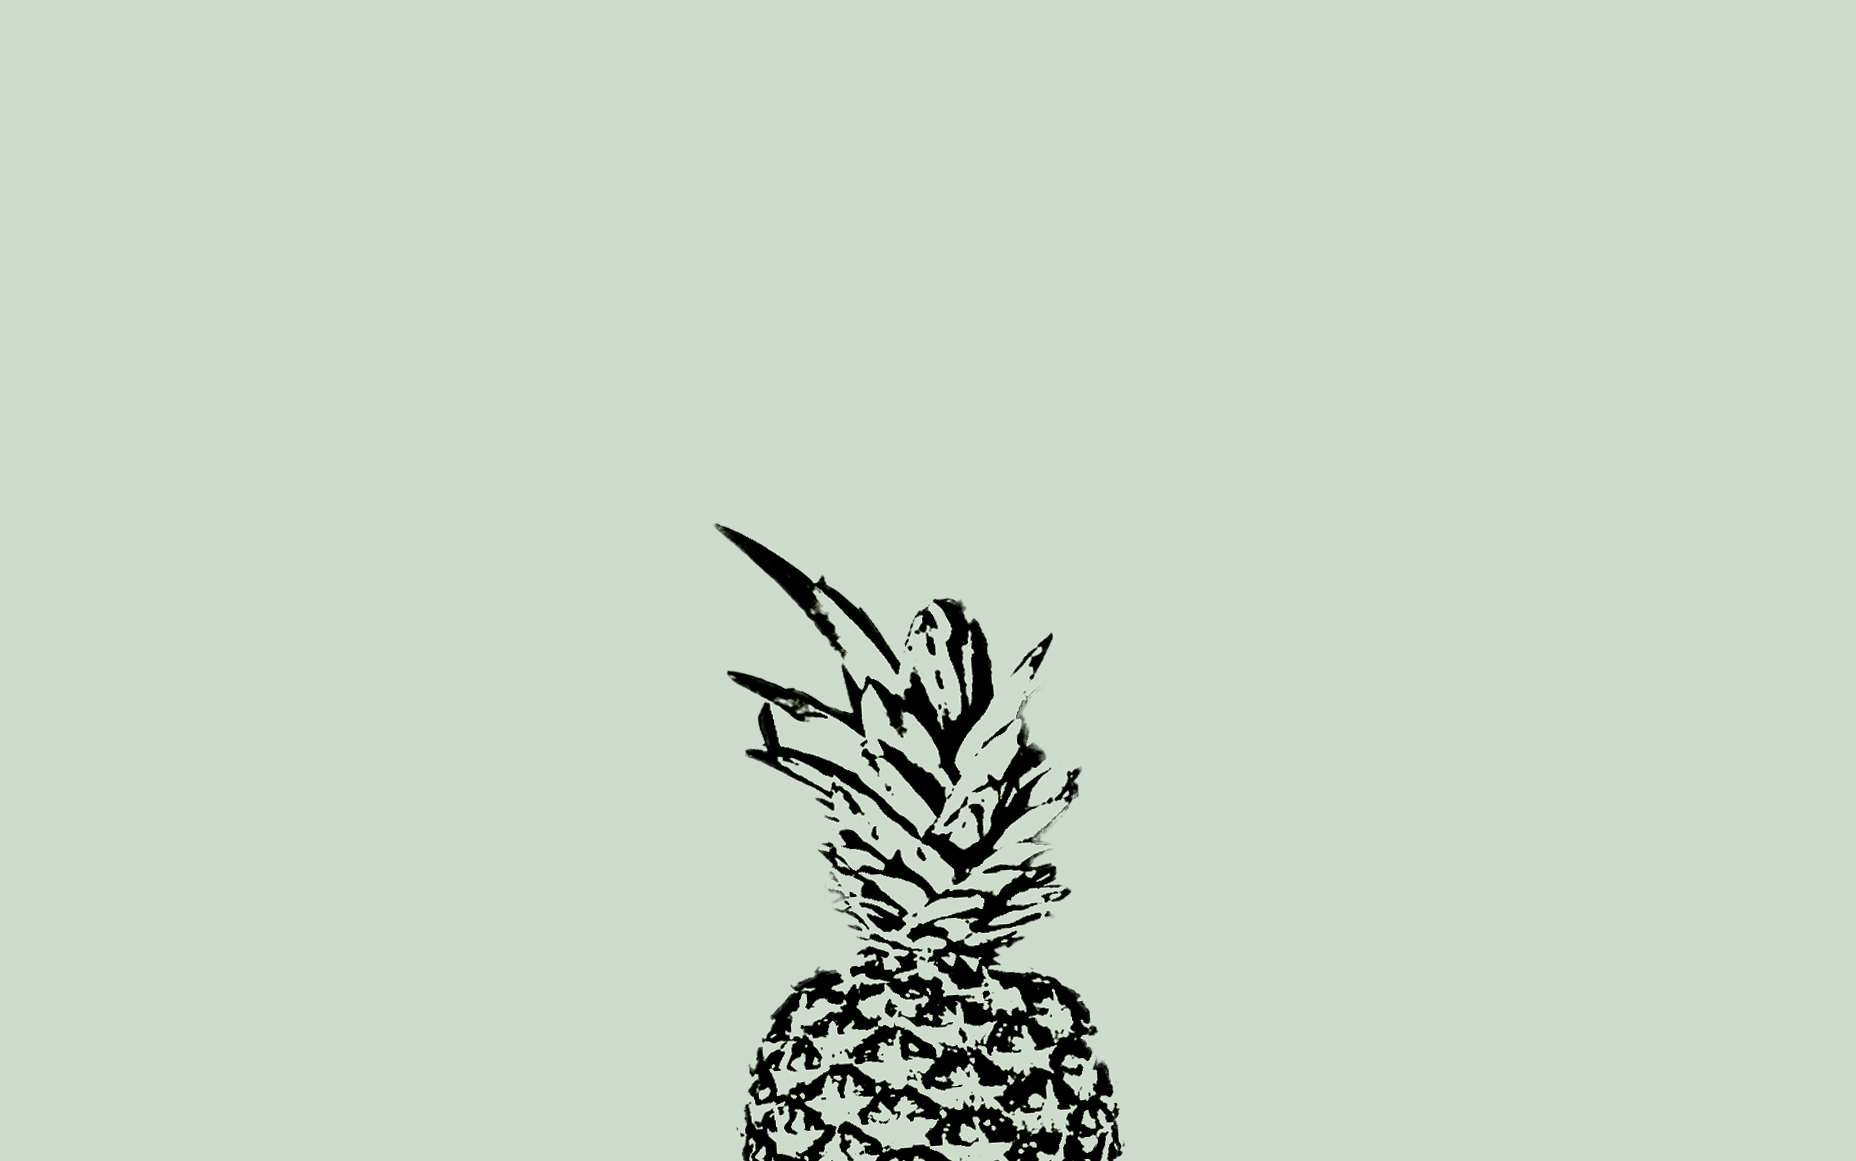 Amazing Wallpaper Macbook Pineapple - pineapple-desktop  Perfect Image Reference_866551.jpg